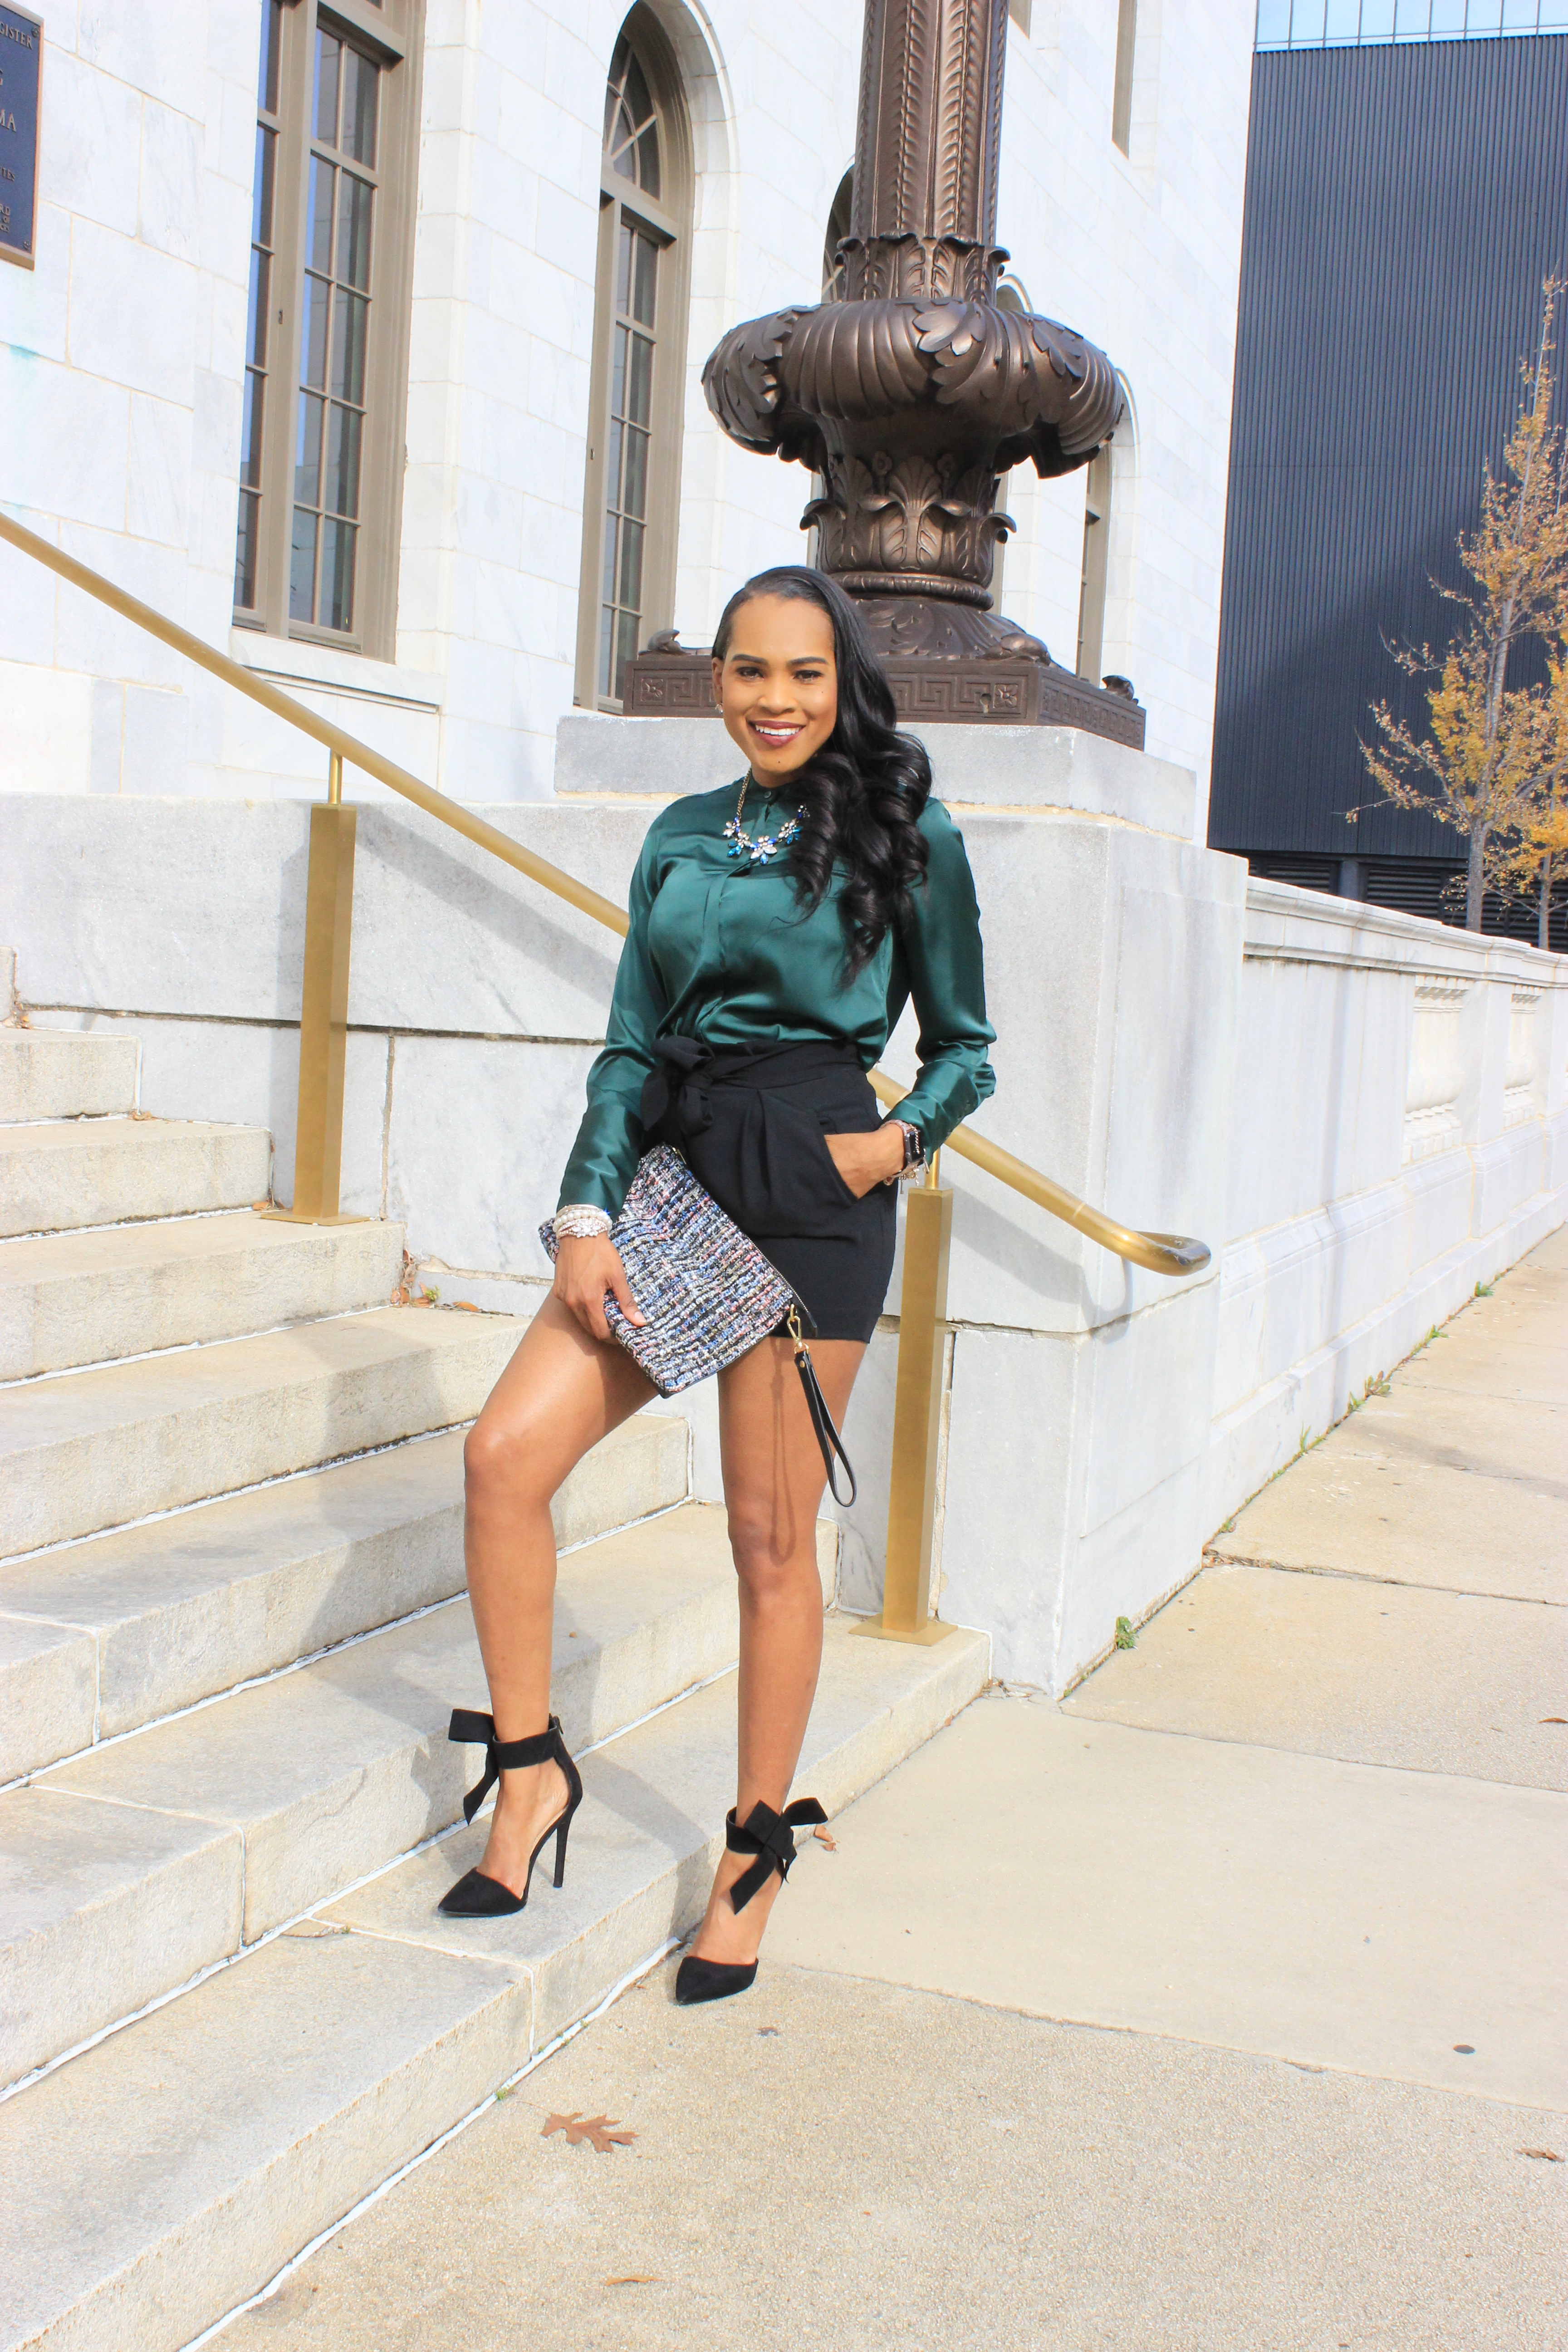 Style-Files-HM-Dark-Green-Satin-button-front-blouse-black-hm-tie-front-shorts-justfab-black-Giada-bow-heels- Gianni-Bini-Lizzy-Notch-Lapel-Collar- with-feather-hem-christmas-style-inspiration-what-to-wear-duirng-the-holidays-oohlalablog-5